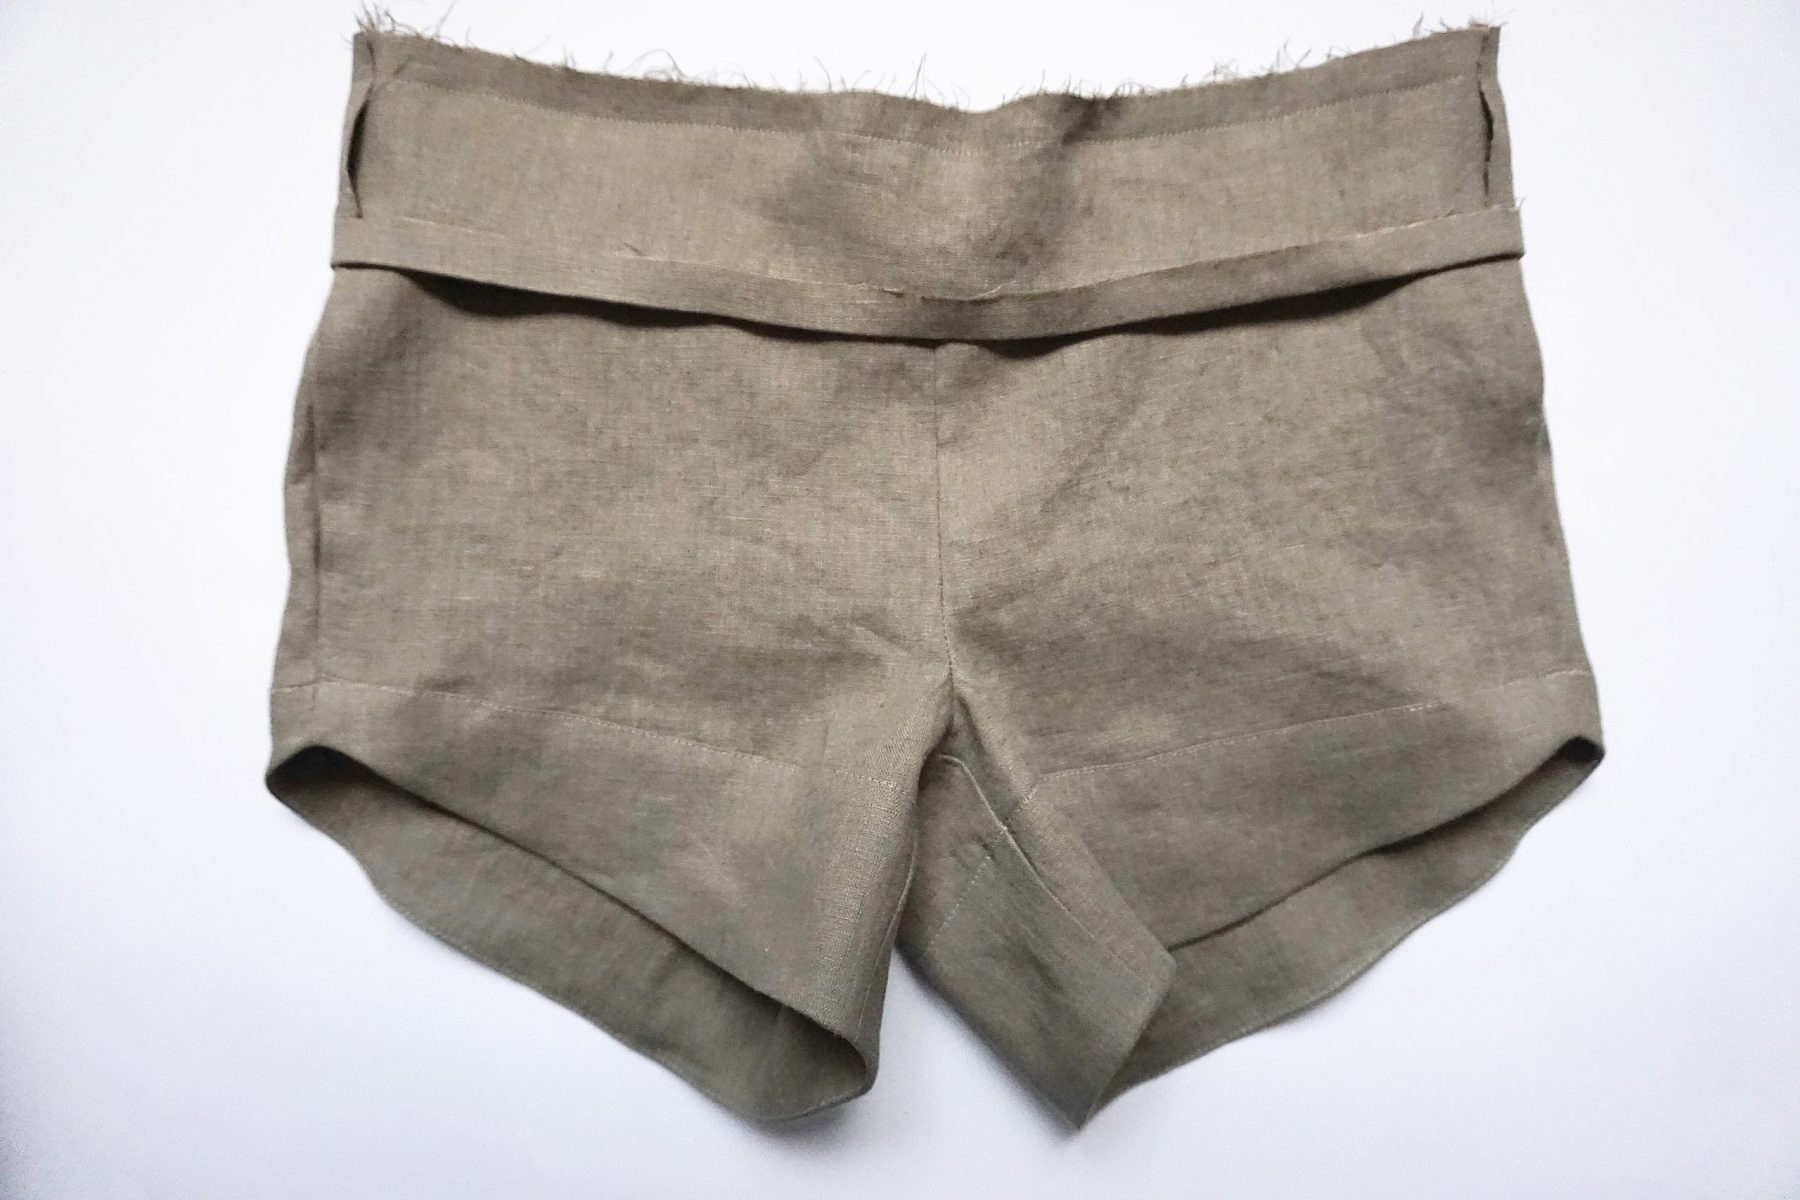 Place the waistband over the shorts, right sides together.